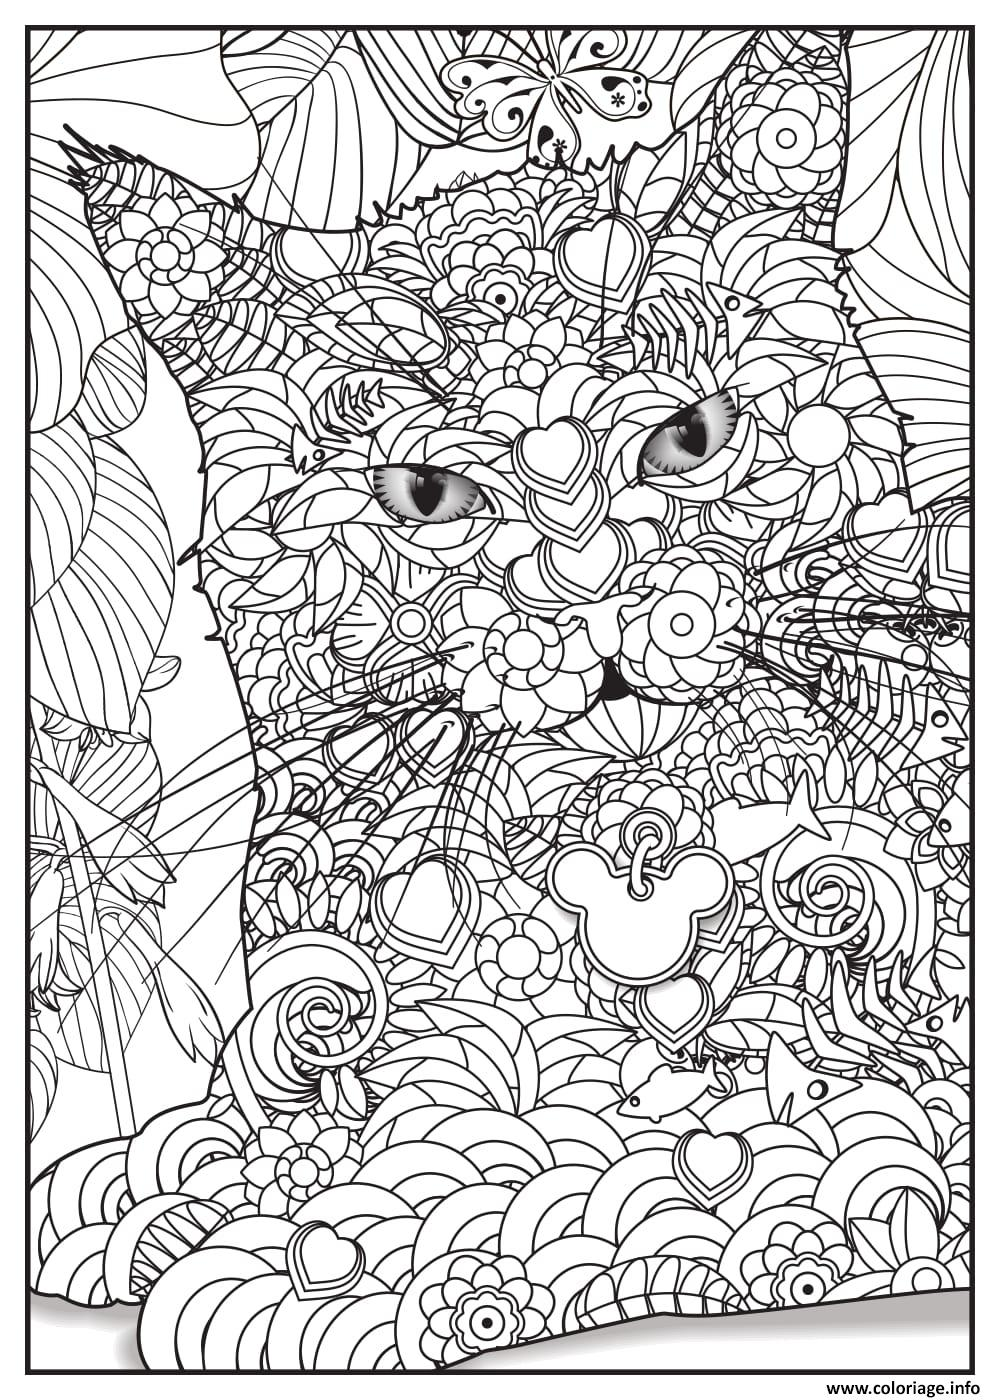 Coloriage chat maine coon adulte animaux dessin - Jeux de coloriage de chat ...